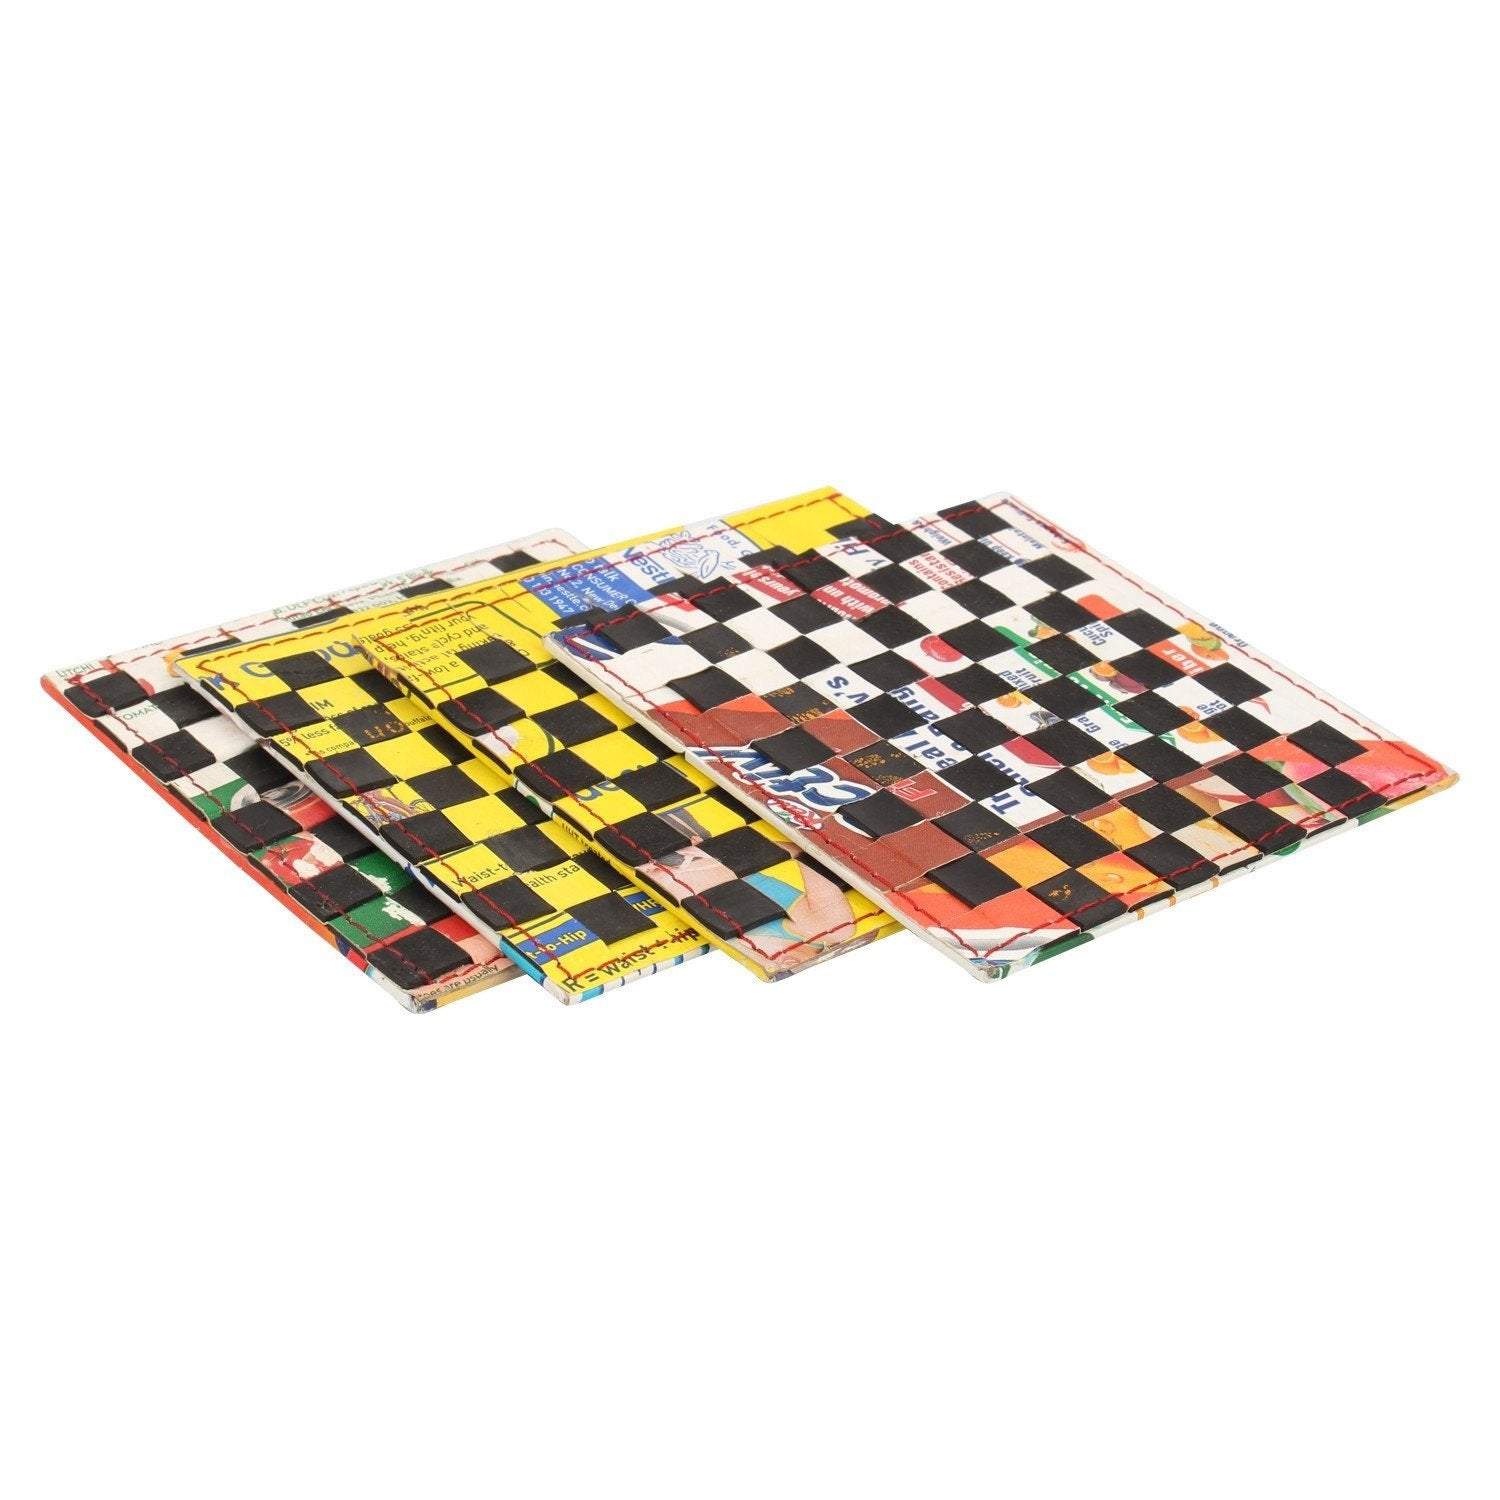 Chess coasters (Set of 4) - Green The Map :: Buy Online Eco Friendly Products - Upycled, Organic, Vegan, Handmade, Fair Trade, Green Products From India